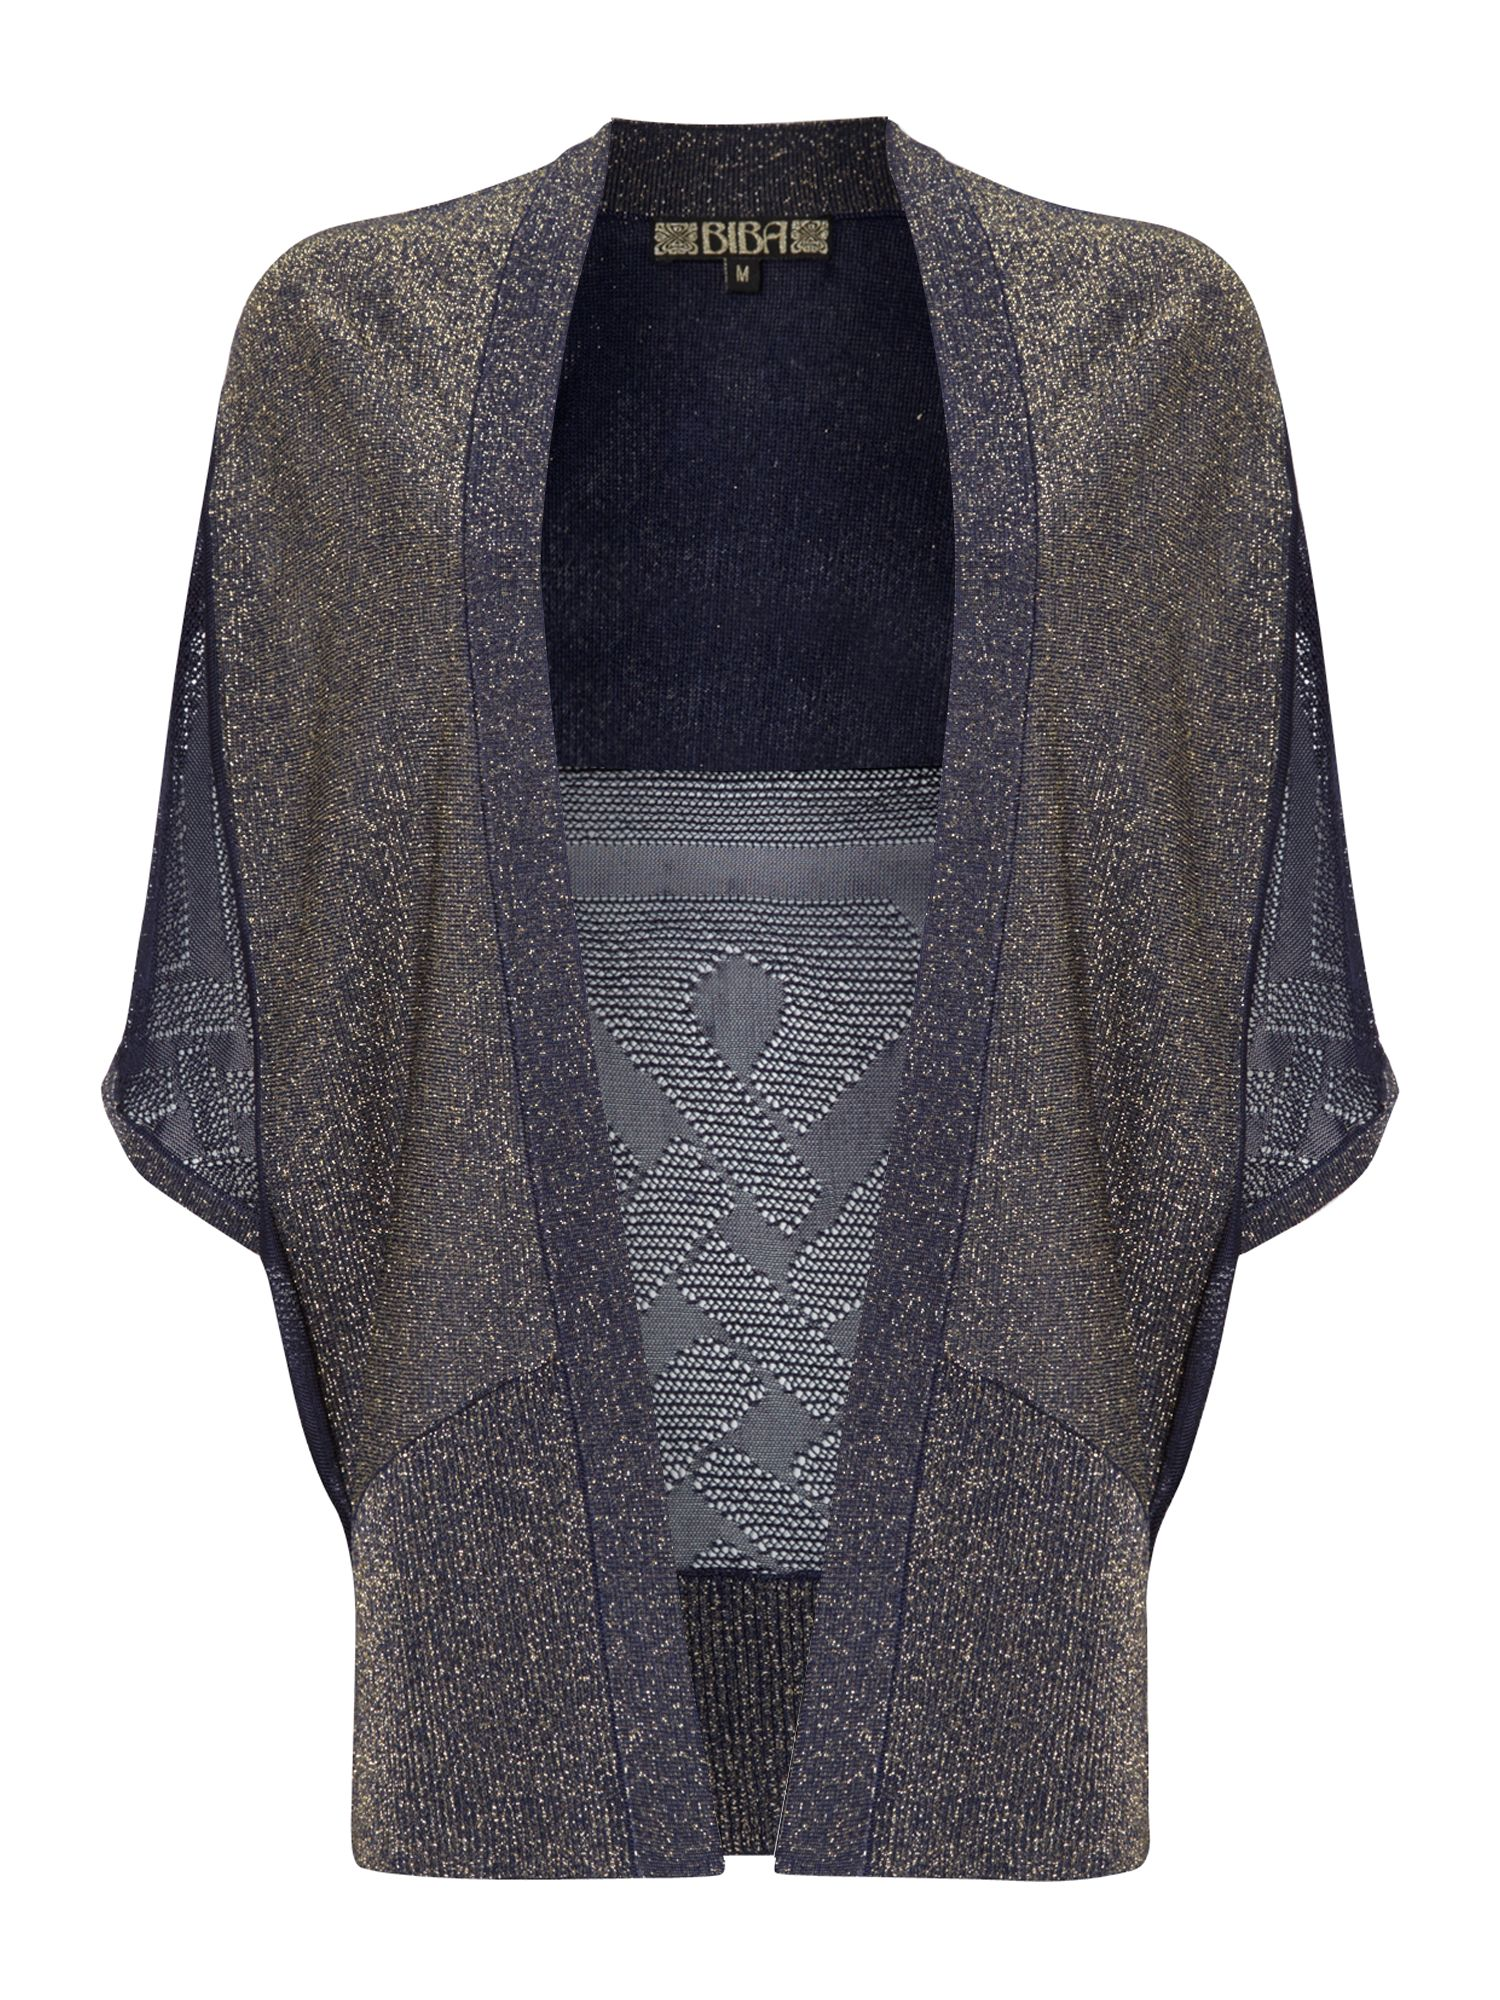 Throw on metallic logo cardigan